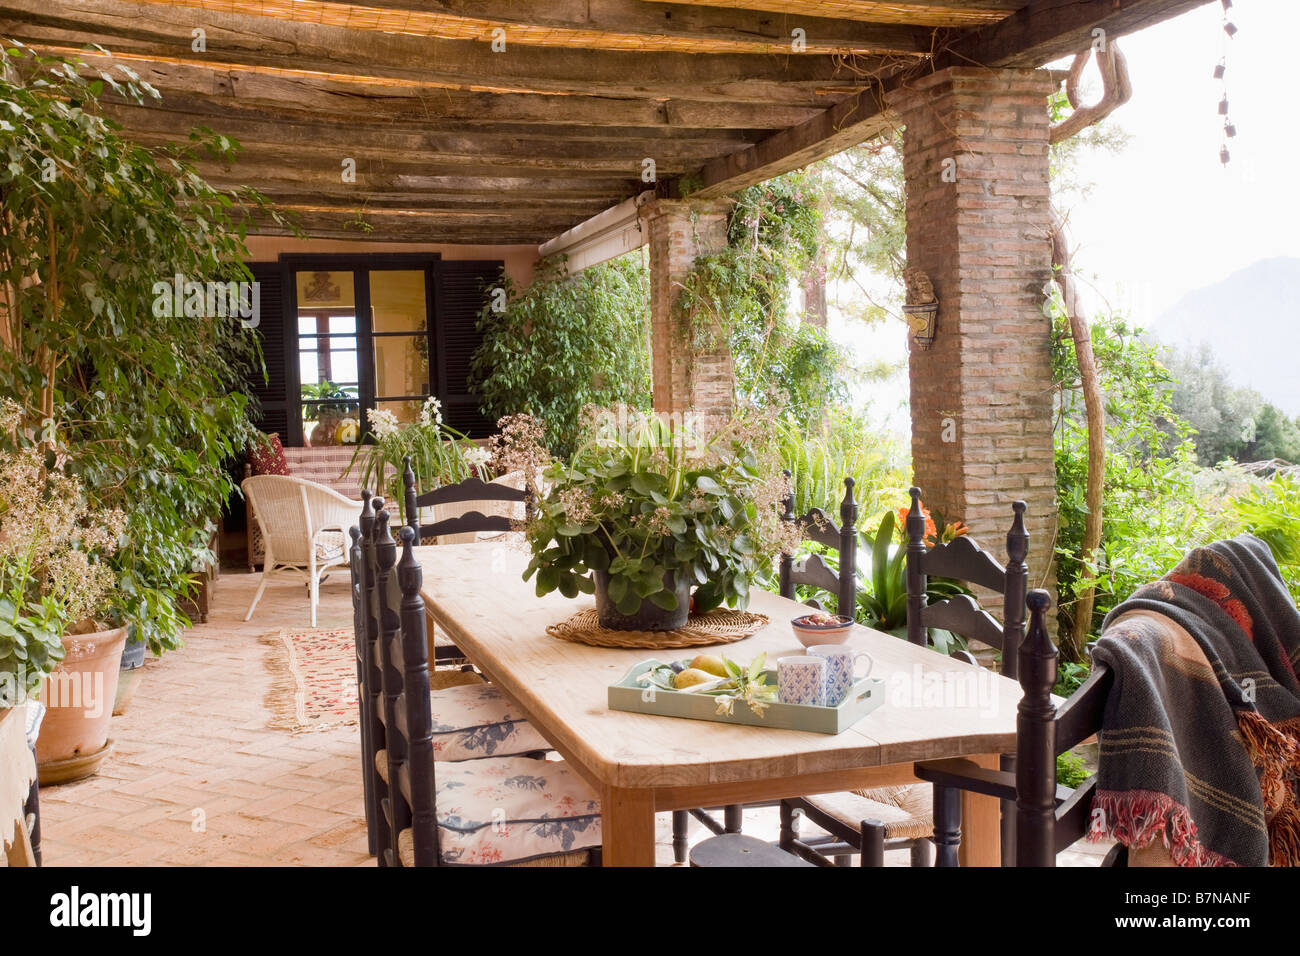 Wooden Table And Carved Chairs On Veranda Of Spanish Villa